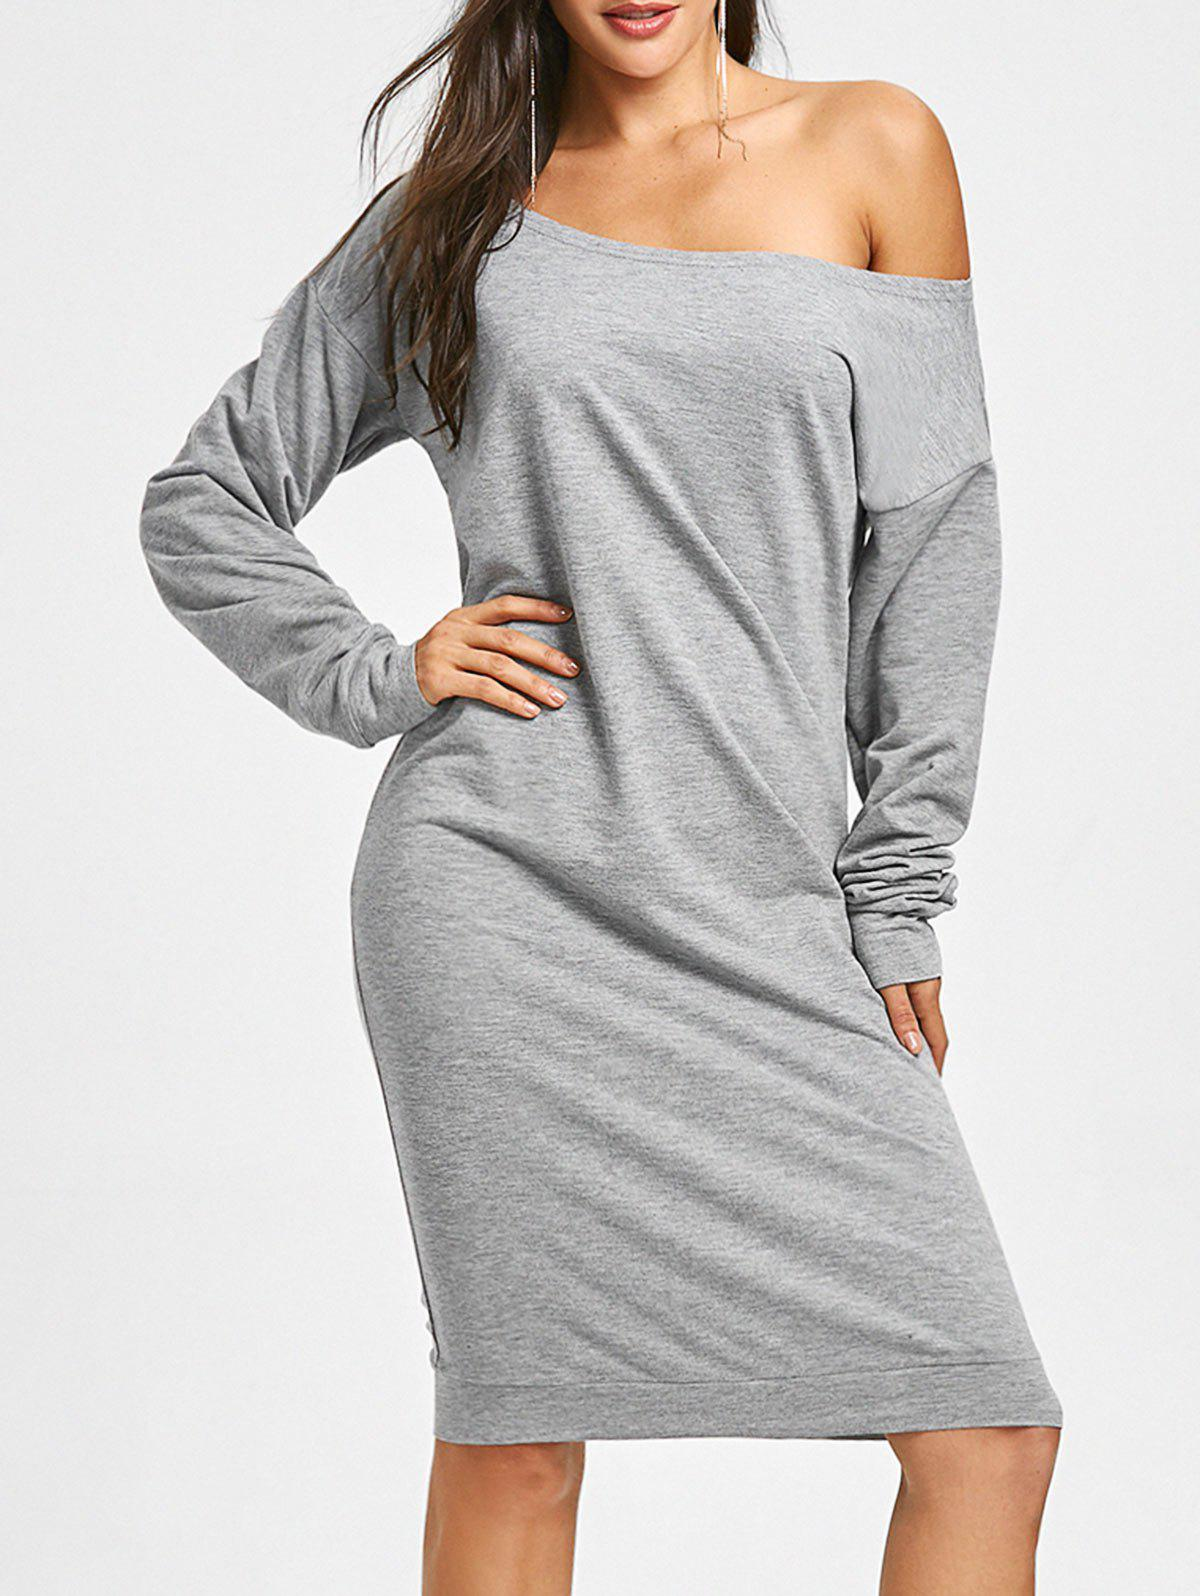 Buy Long Sleeve Skew Collar Sweatshirt Dress